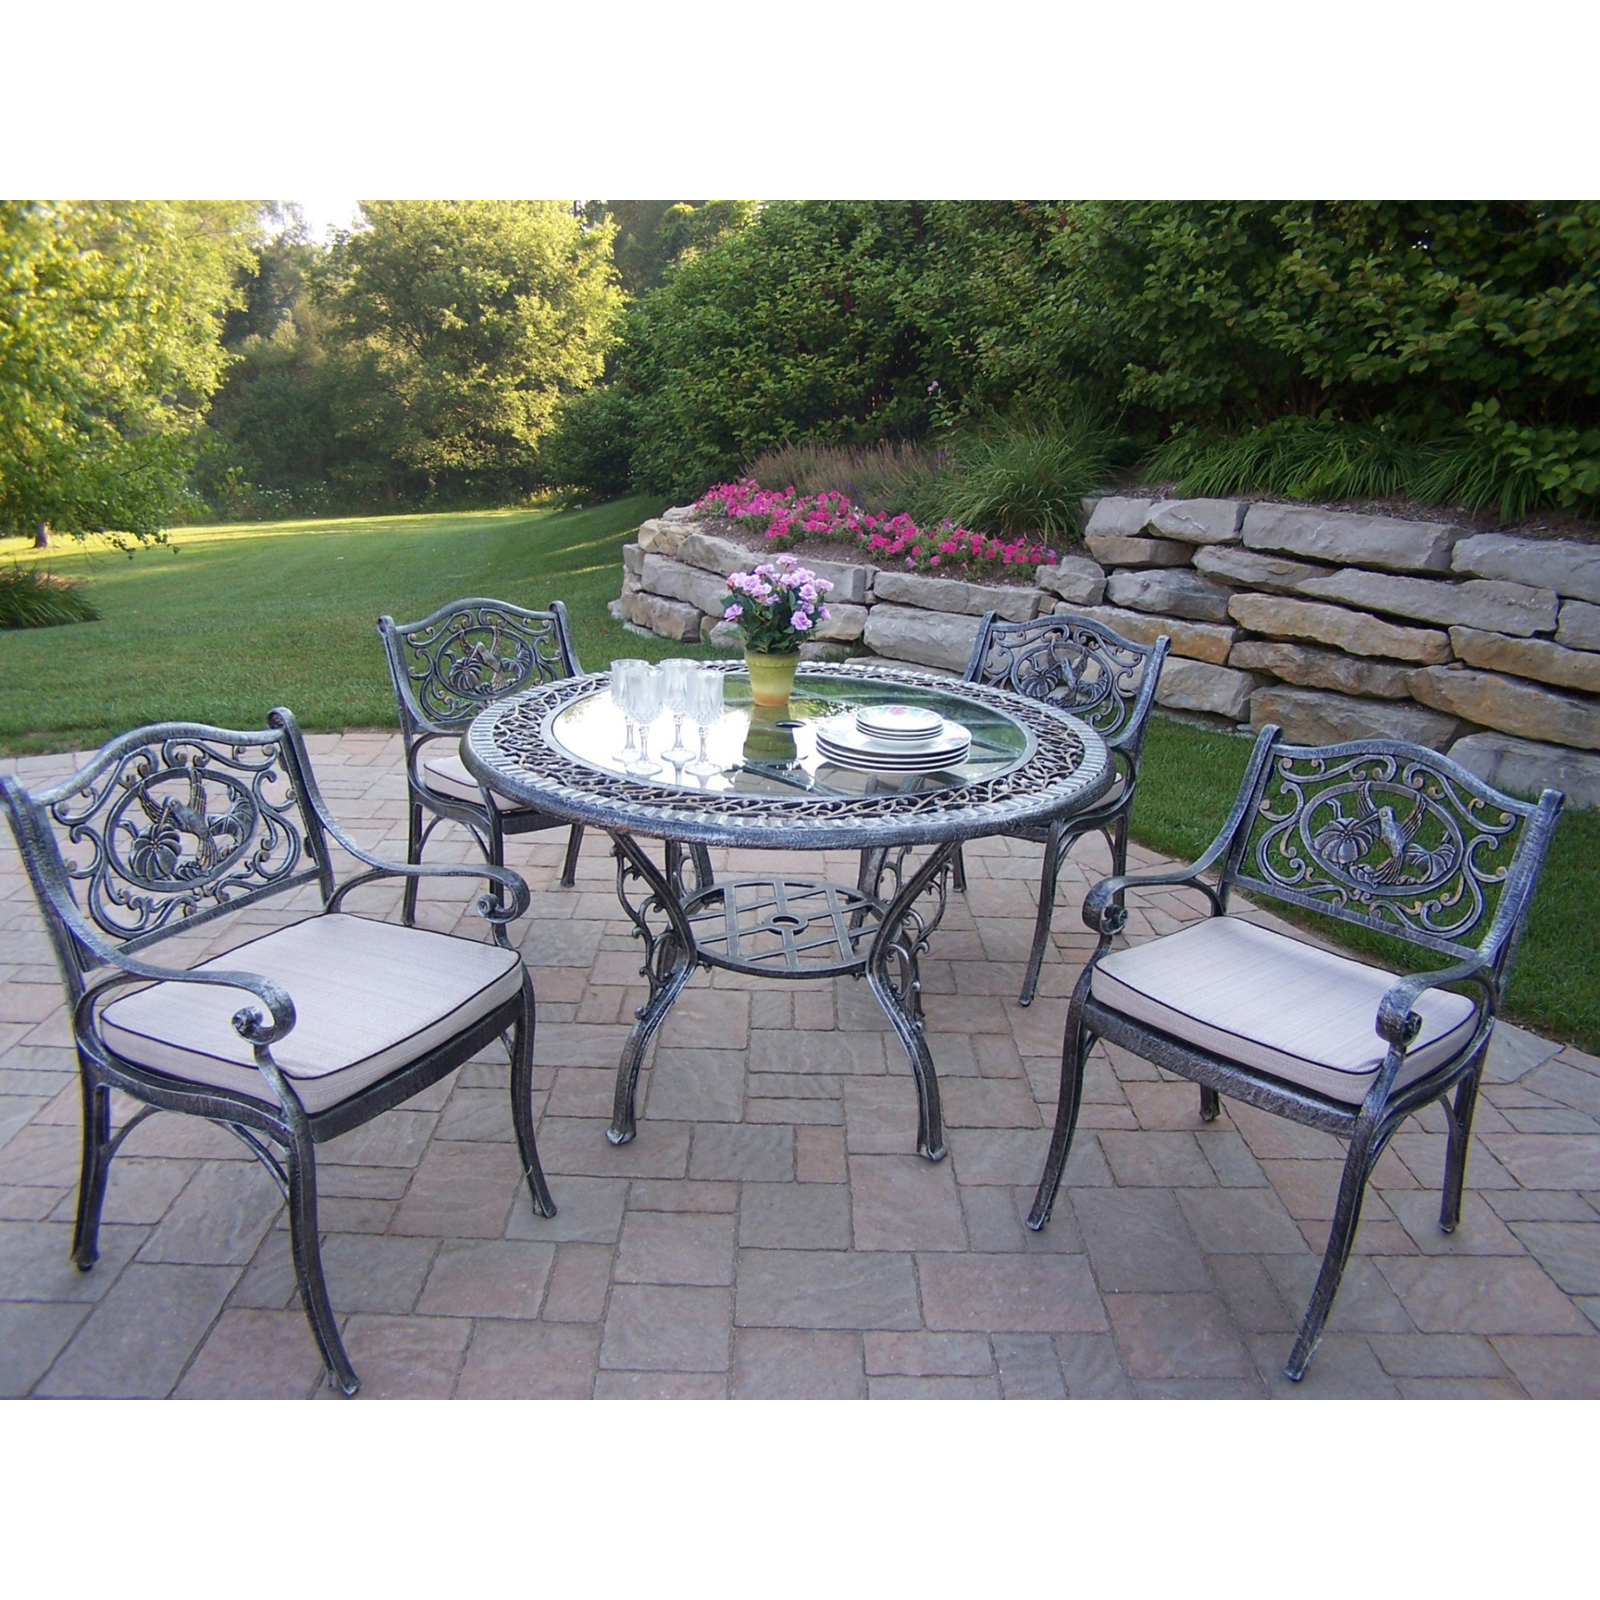 Oakland Living Mississippi Cast Aluminum 82 x 42 in Patio Dining